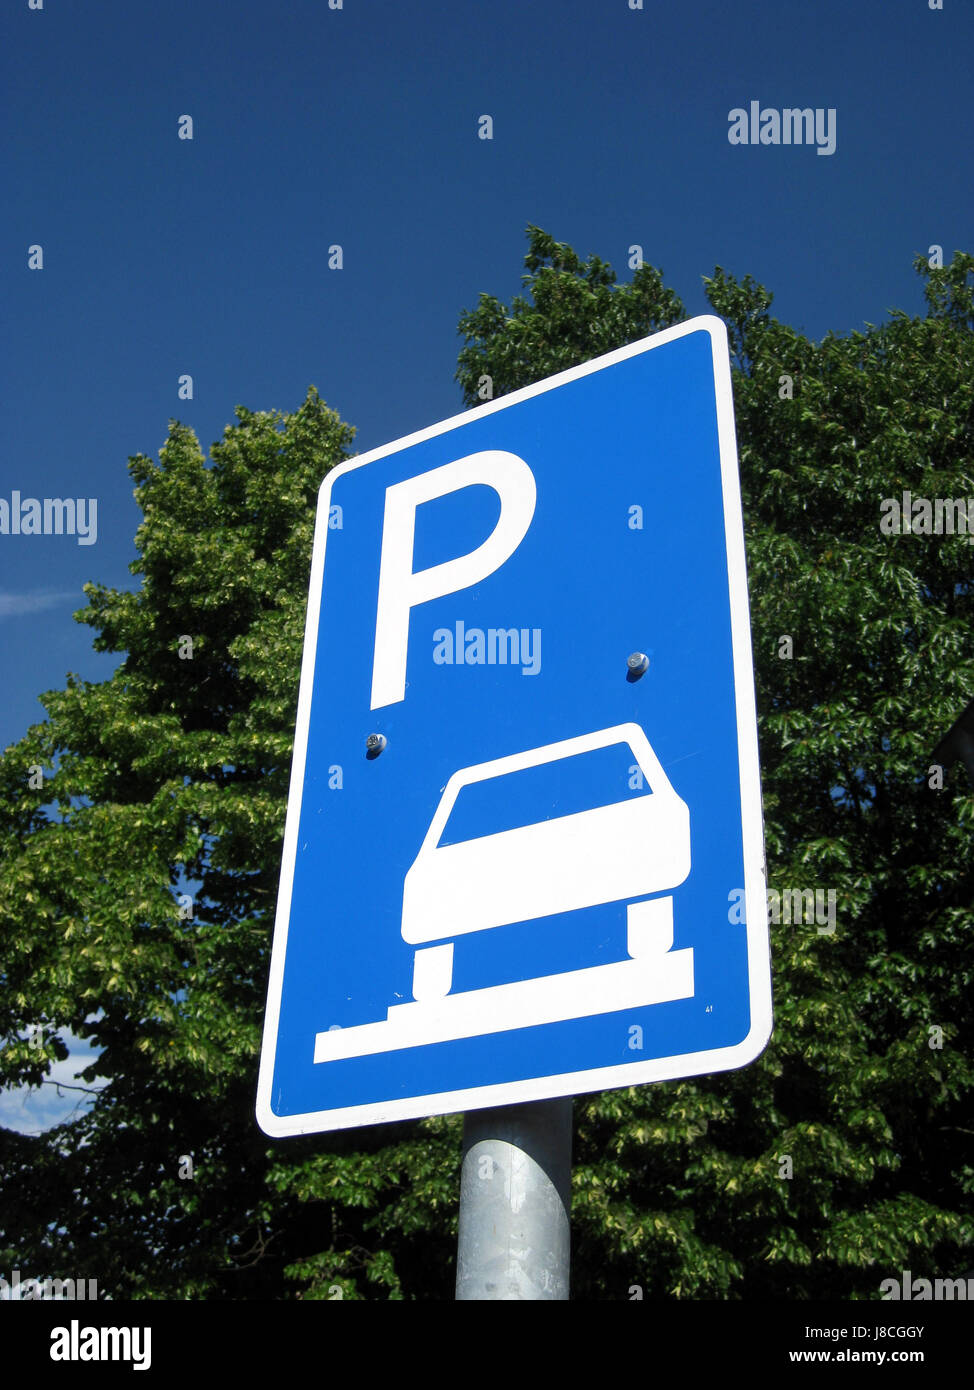 sign, signal, traffic, transportation, pavement, sidewalk, parking, object, Stock Photo